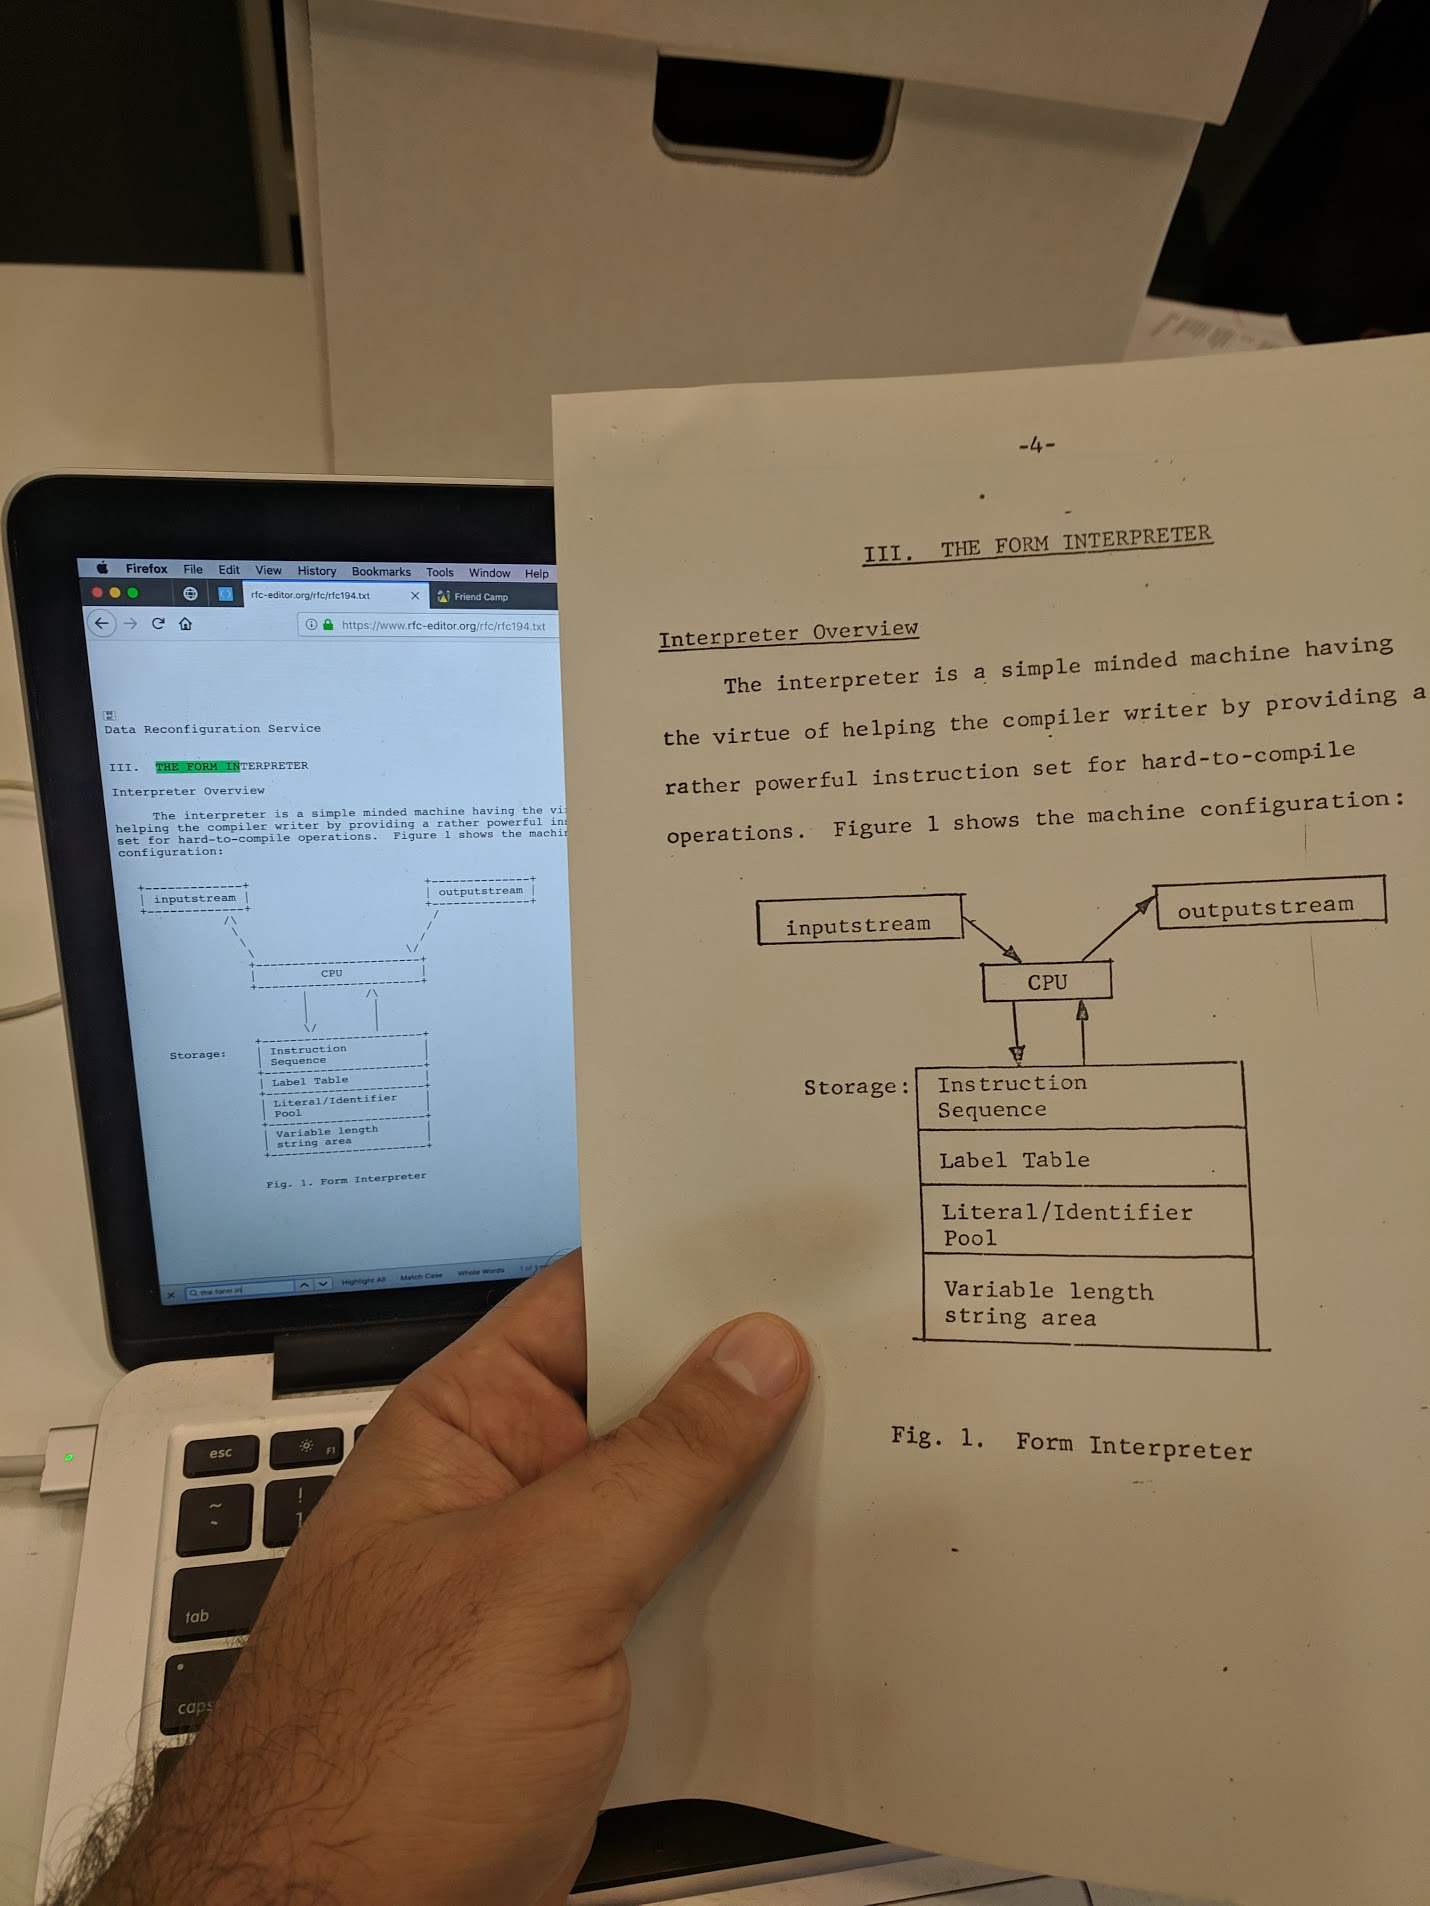 Photo of a paper document held next a computer monitor, showing the discrepancy described above.